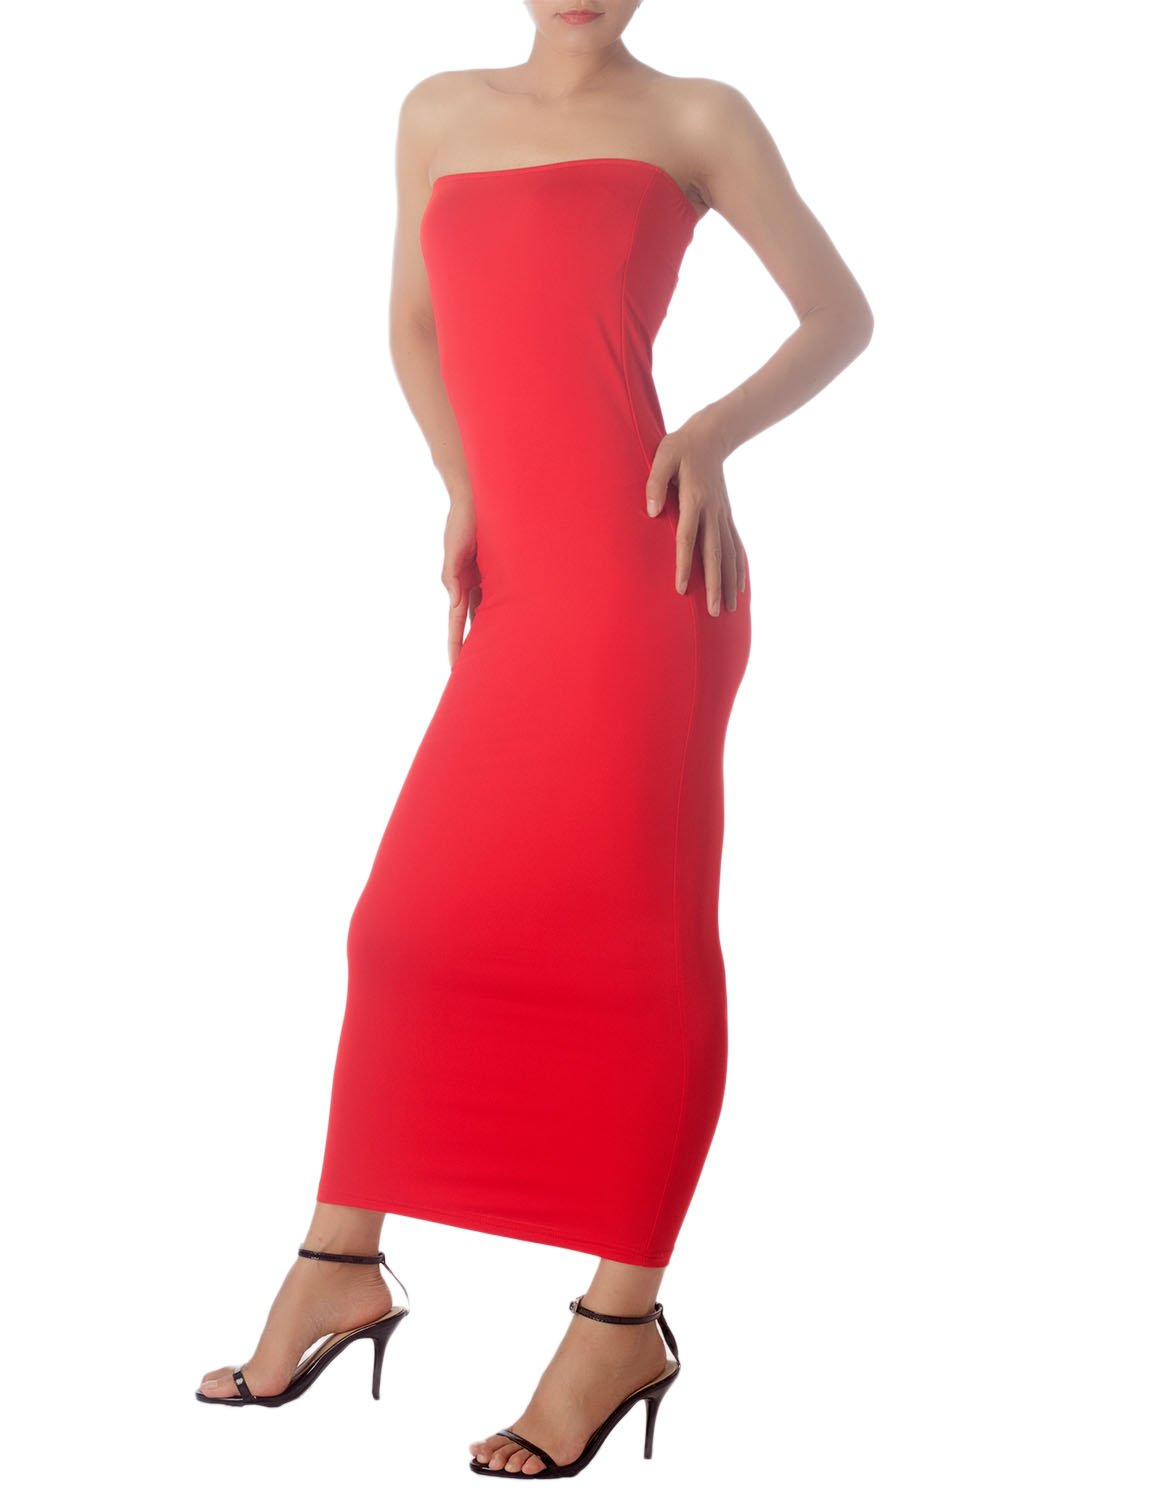 Women's Casual Sleeveless Stretch Tube Pencil Bodycon Long Strapless Dress, Size: XL, Red